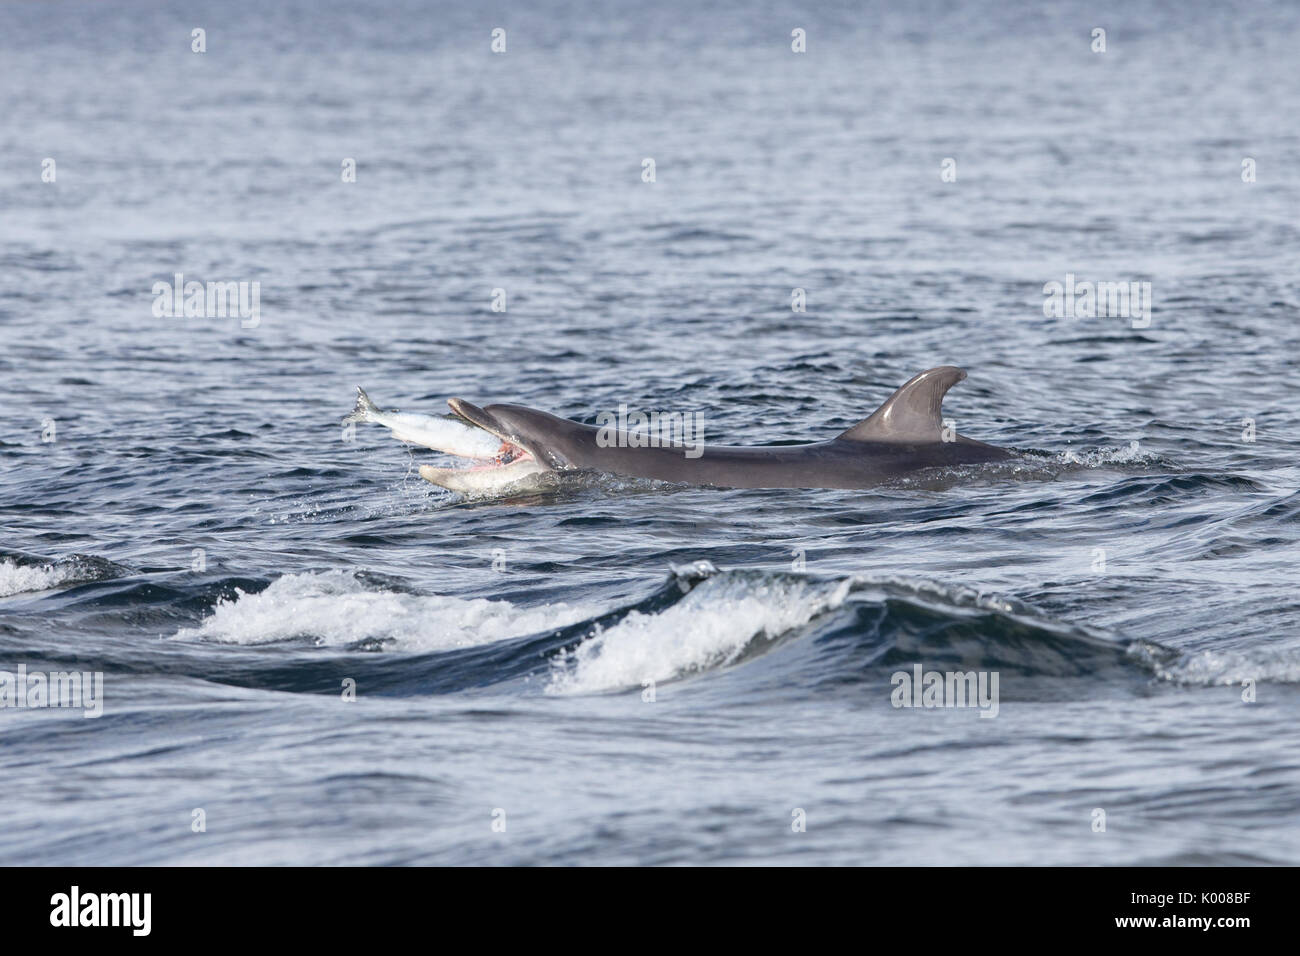 Bottlenose dolphin hunting & feeding on salmon in the Moray Firth Stock Photo